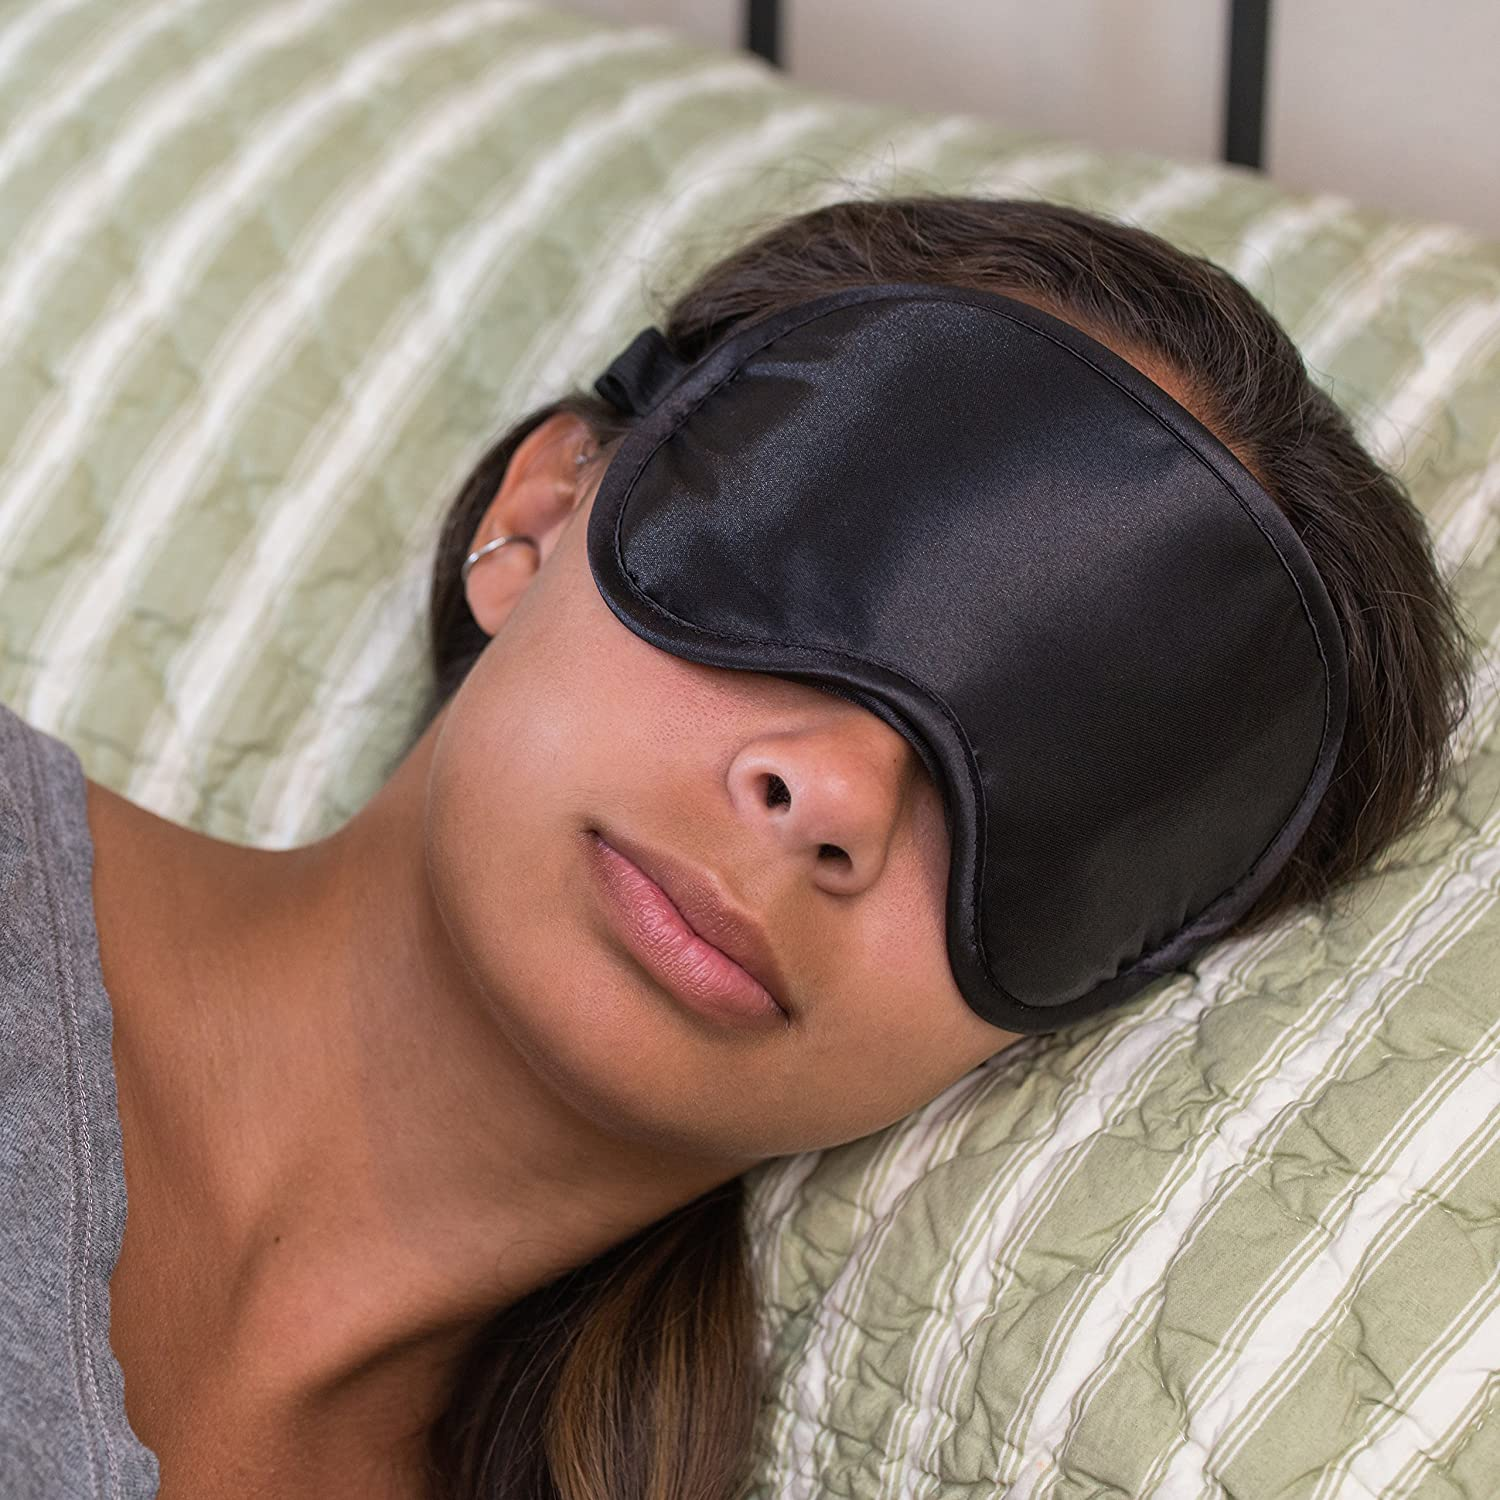 The set comes with a luxury sleep mask, Earplugs, Earplug Case and Sleep Serum in a Silver Box. Planning a vacation and need some rest on the go? Buy today the Escape Luxury Travel Sleep Mask.